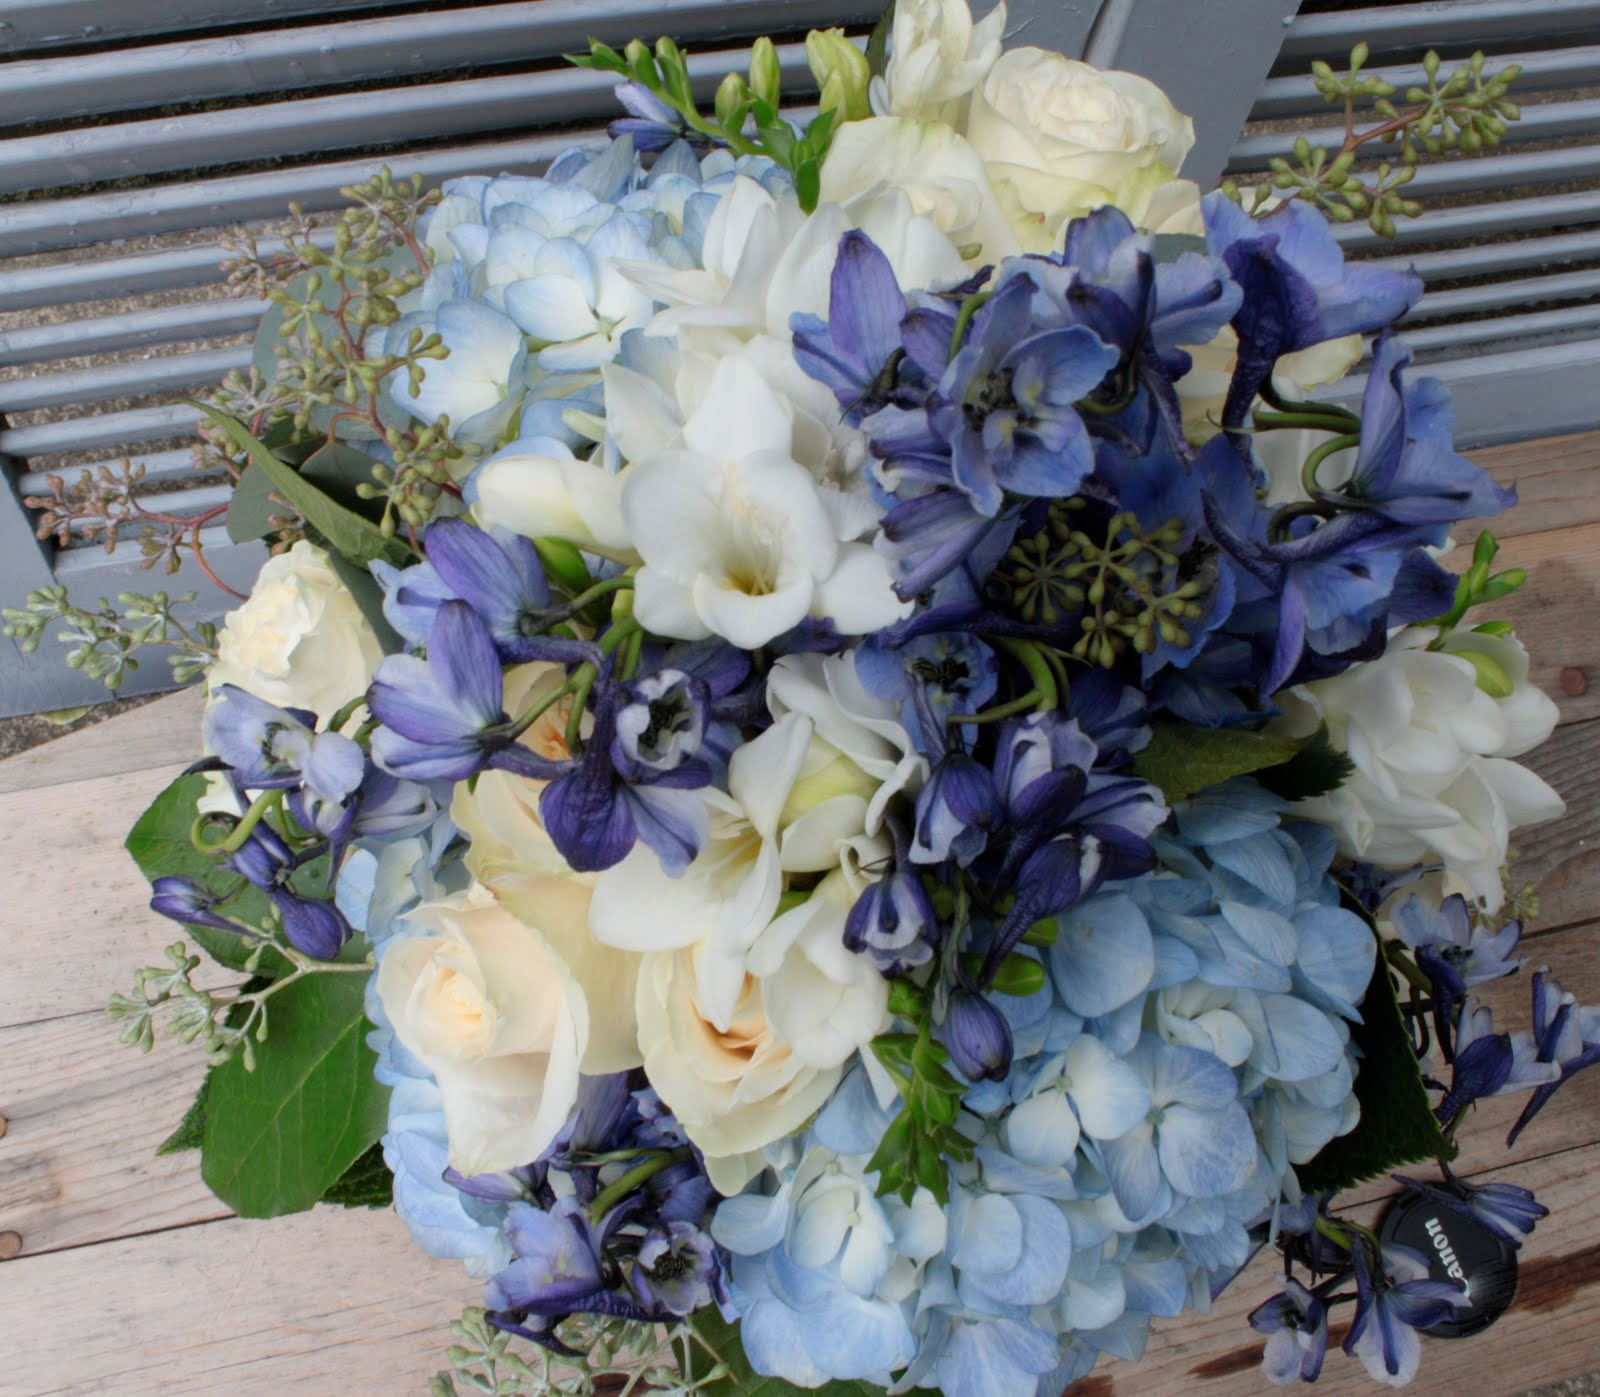 This Is Our Most Recent Bouquet And Wow Did I Enjoy Putting Beauty Together It Consists Of Blue Delphinium Variety Volkenfrieden